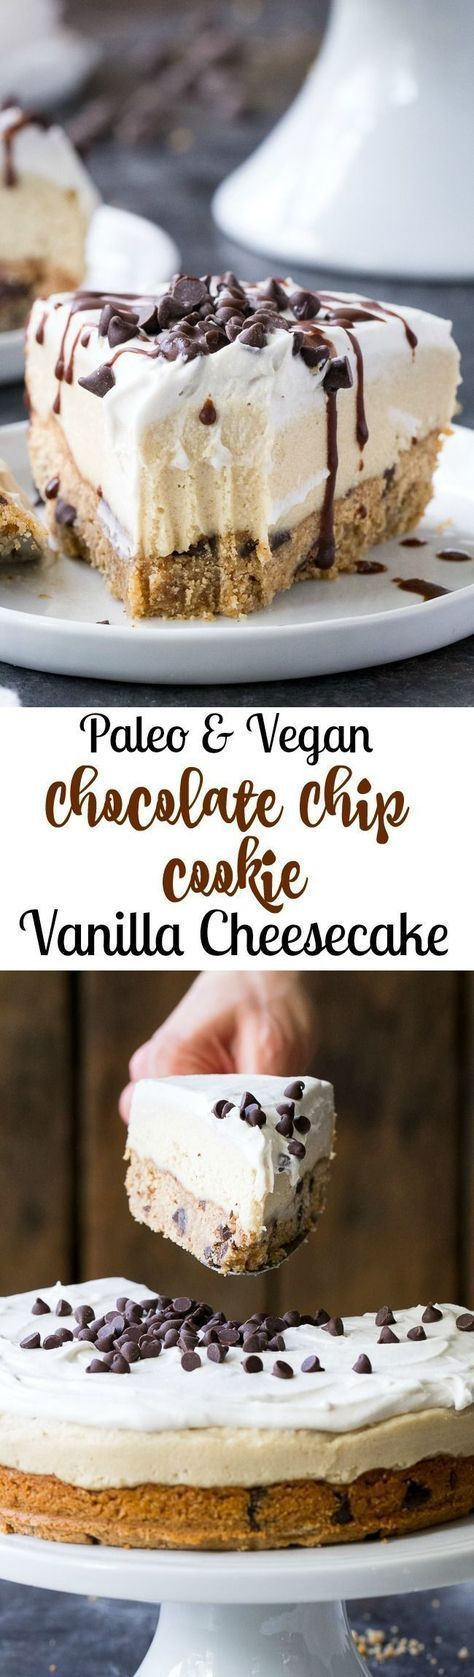 This chocolate chip cookie vanilla cheesecake starts with a thick chewy chocolate chip cookie layer topped with creamy cashew vanilla cheesecake, coconut whipped cream, more chocolate chips and a rich chocolate drizzle. It's the perfect secretly healthy dessert for any special occasion! Gluten free, dairy free, paleo and vegan.